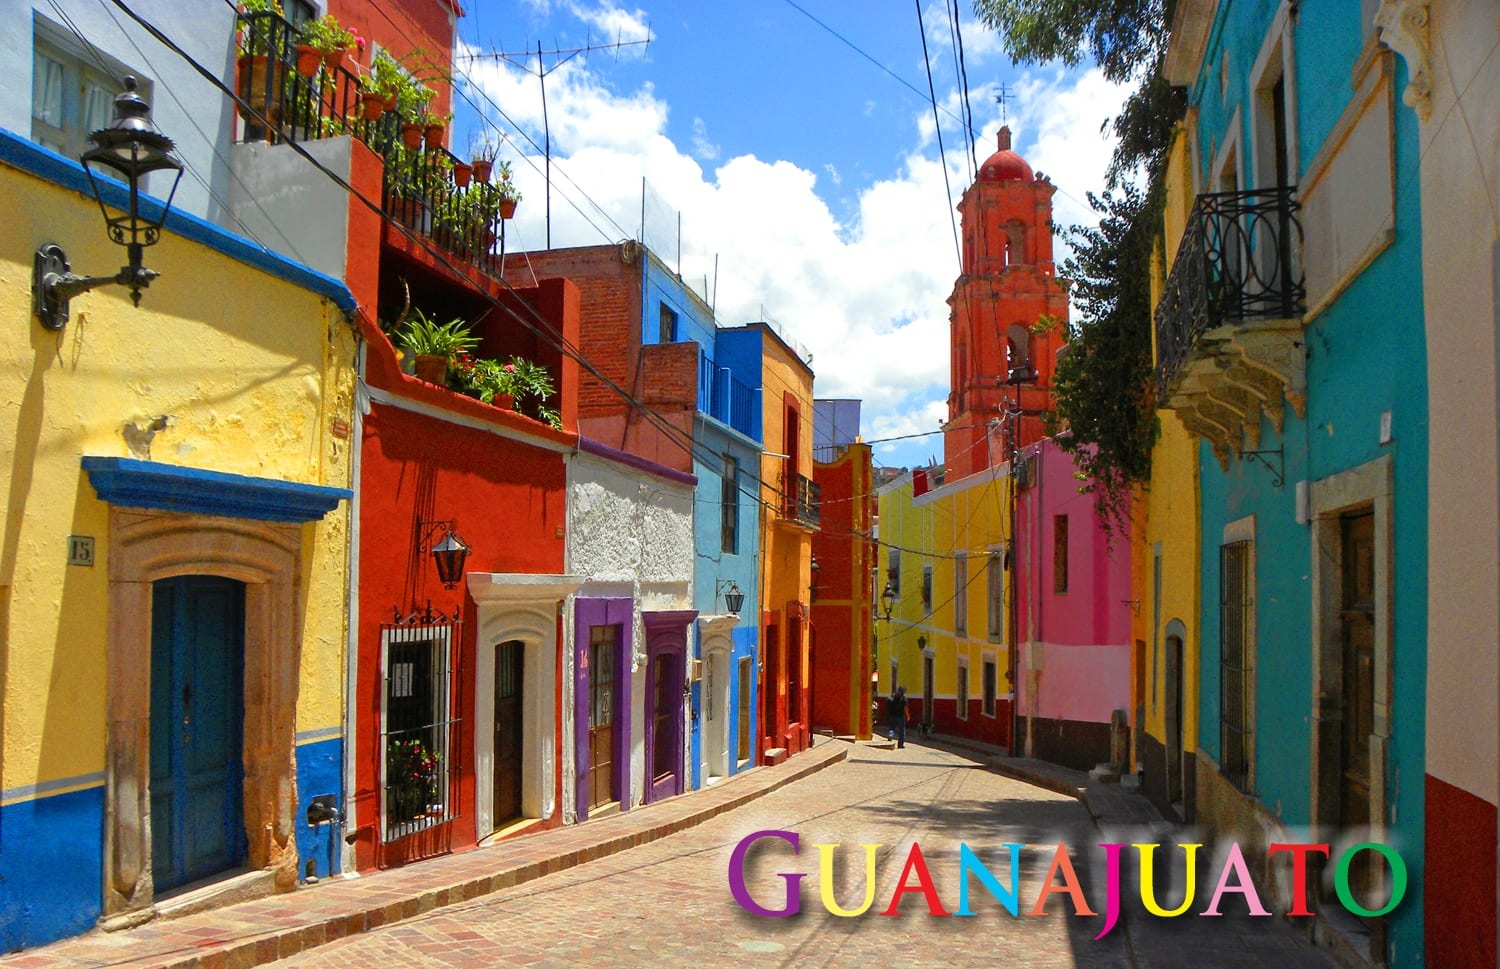 Guanajuato-Mexico-–-the-prettiest-town-I%u2019ve-ever-seen